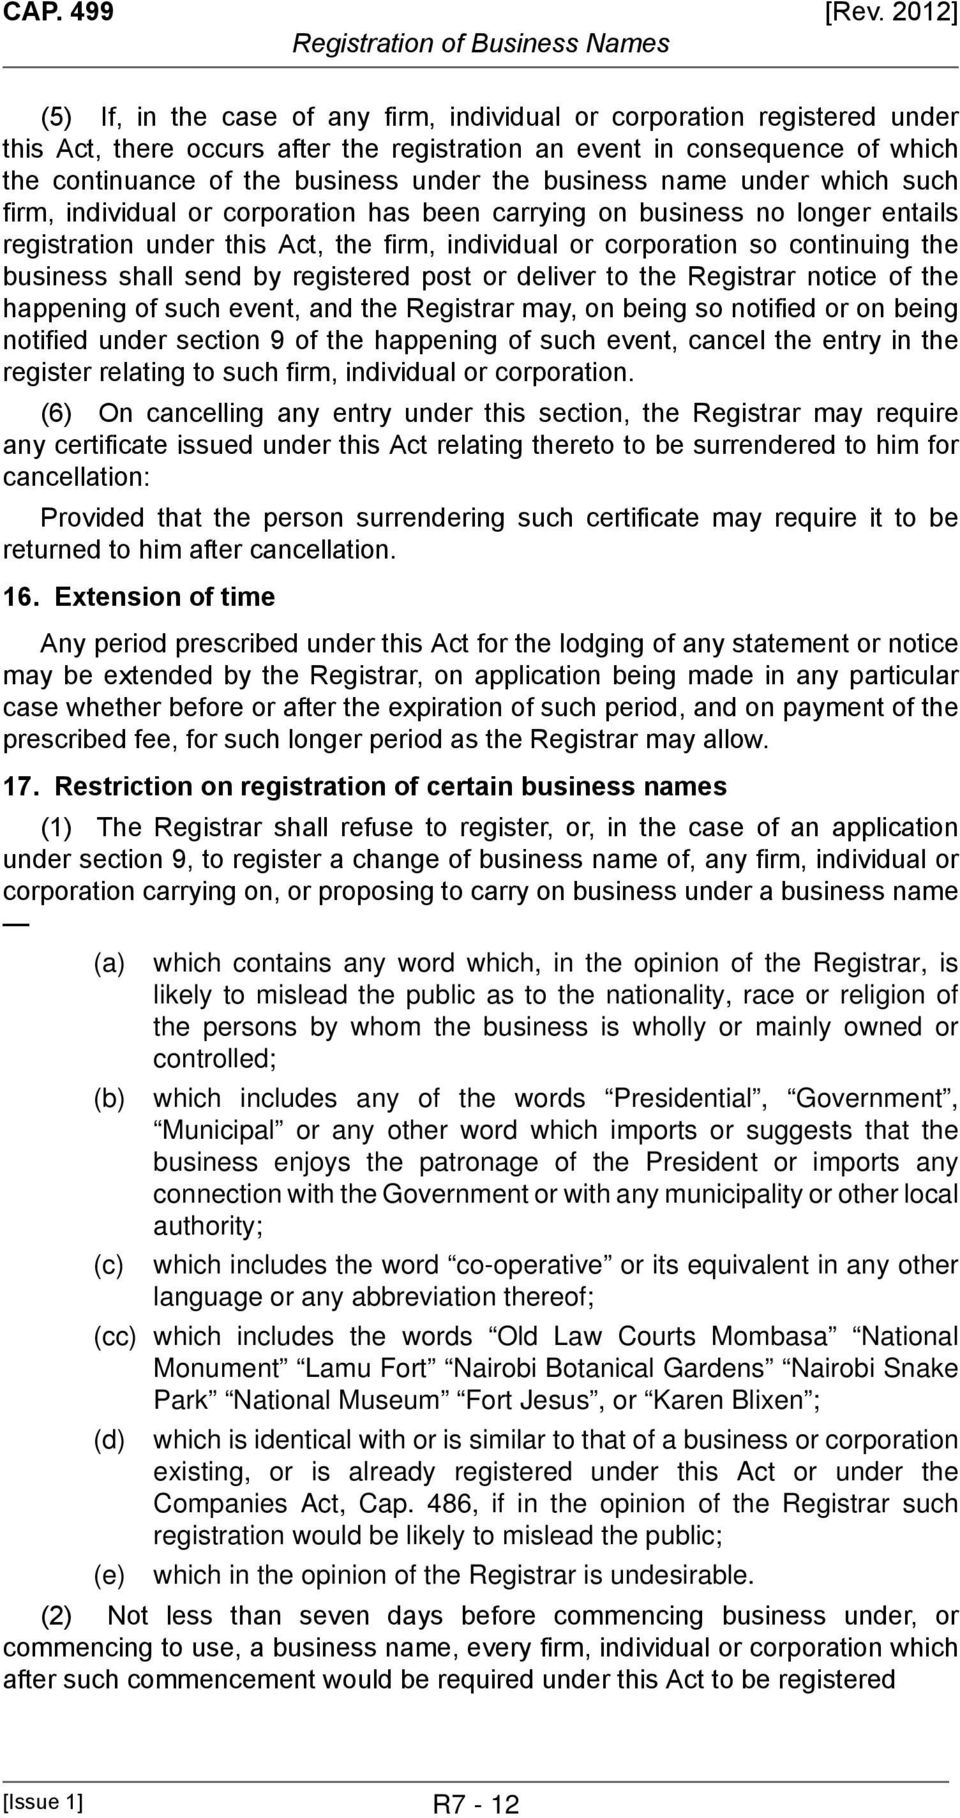 the business shall send by registered post or deliver to the Registrar notice of the happening of such event, and the Registrar may, on being so notified or on being notified under section 9 of the